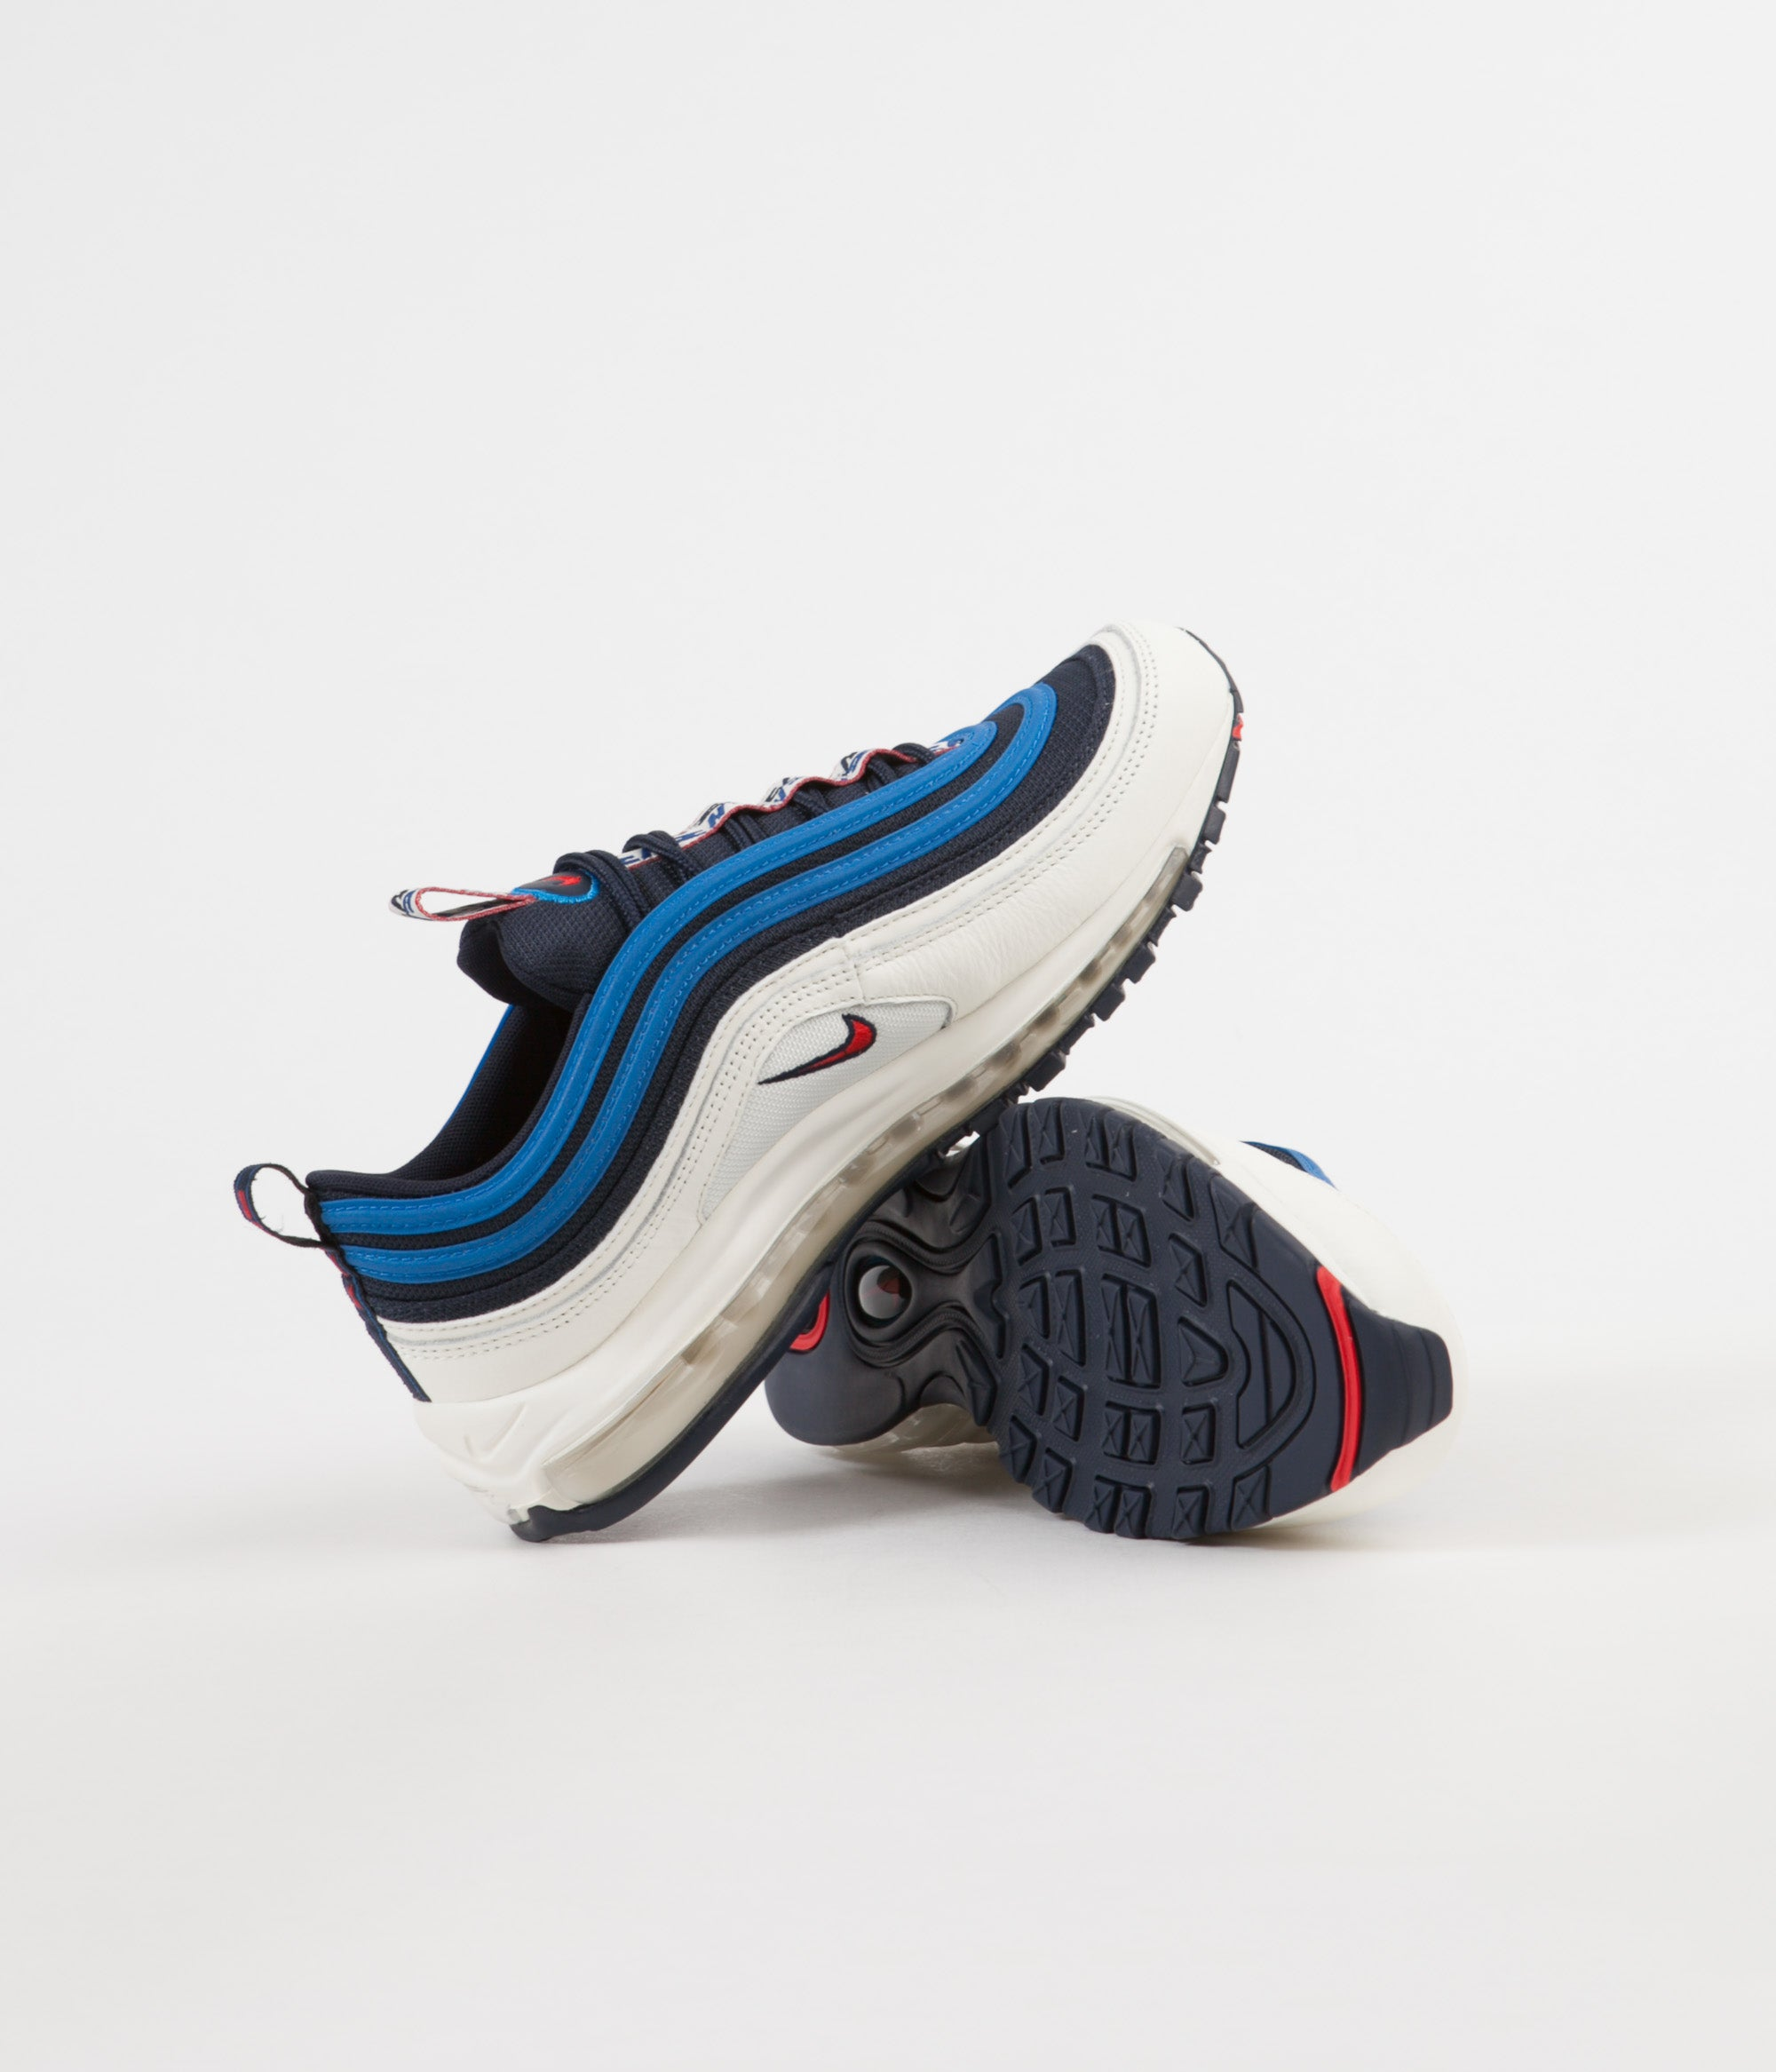 f78e05bfdbc9 ... Nike Air Max 97 SE Shoes - Obsidian   University Red - Sail - Blue  Nebula ...